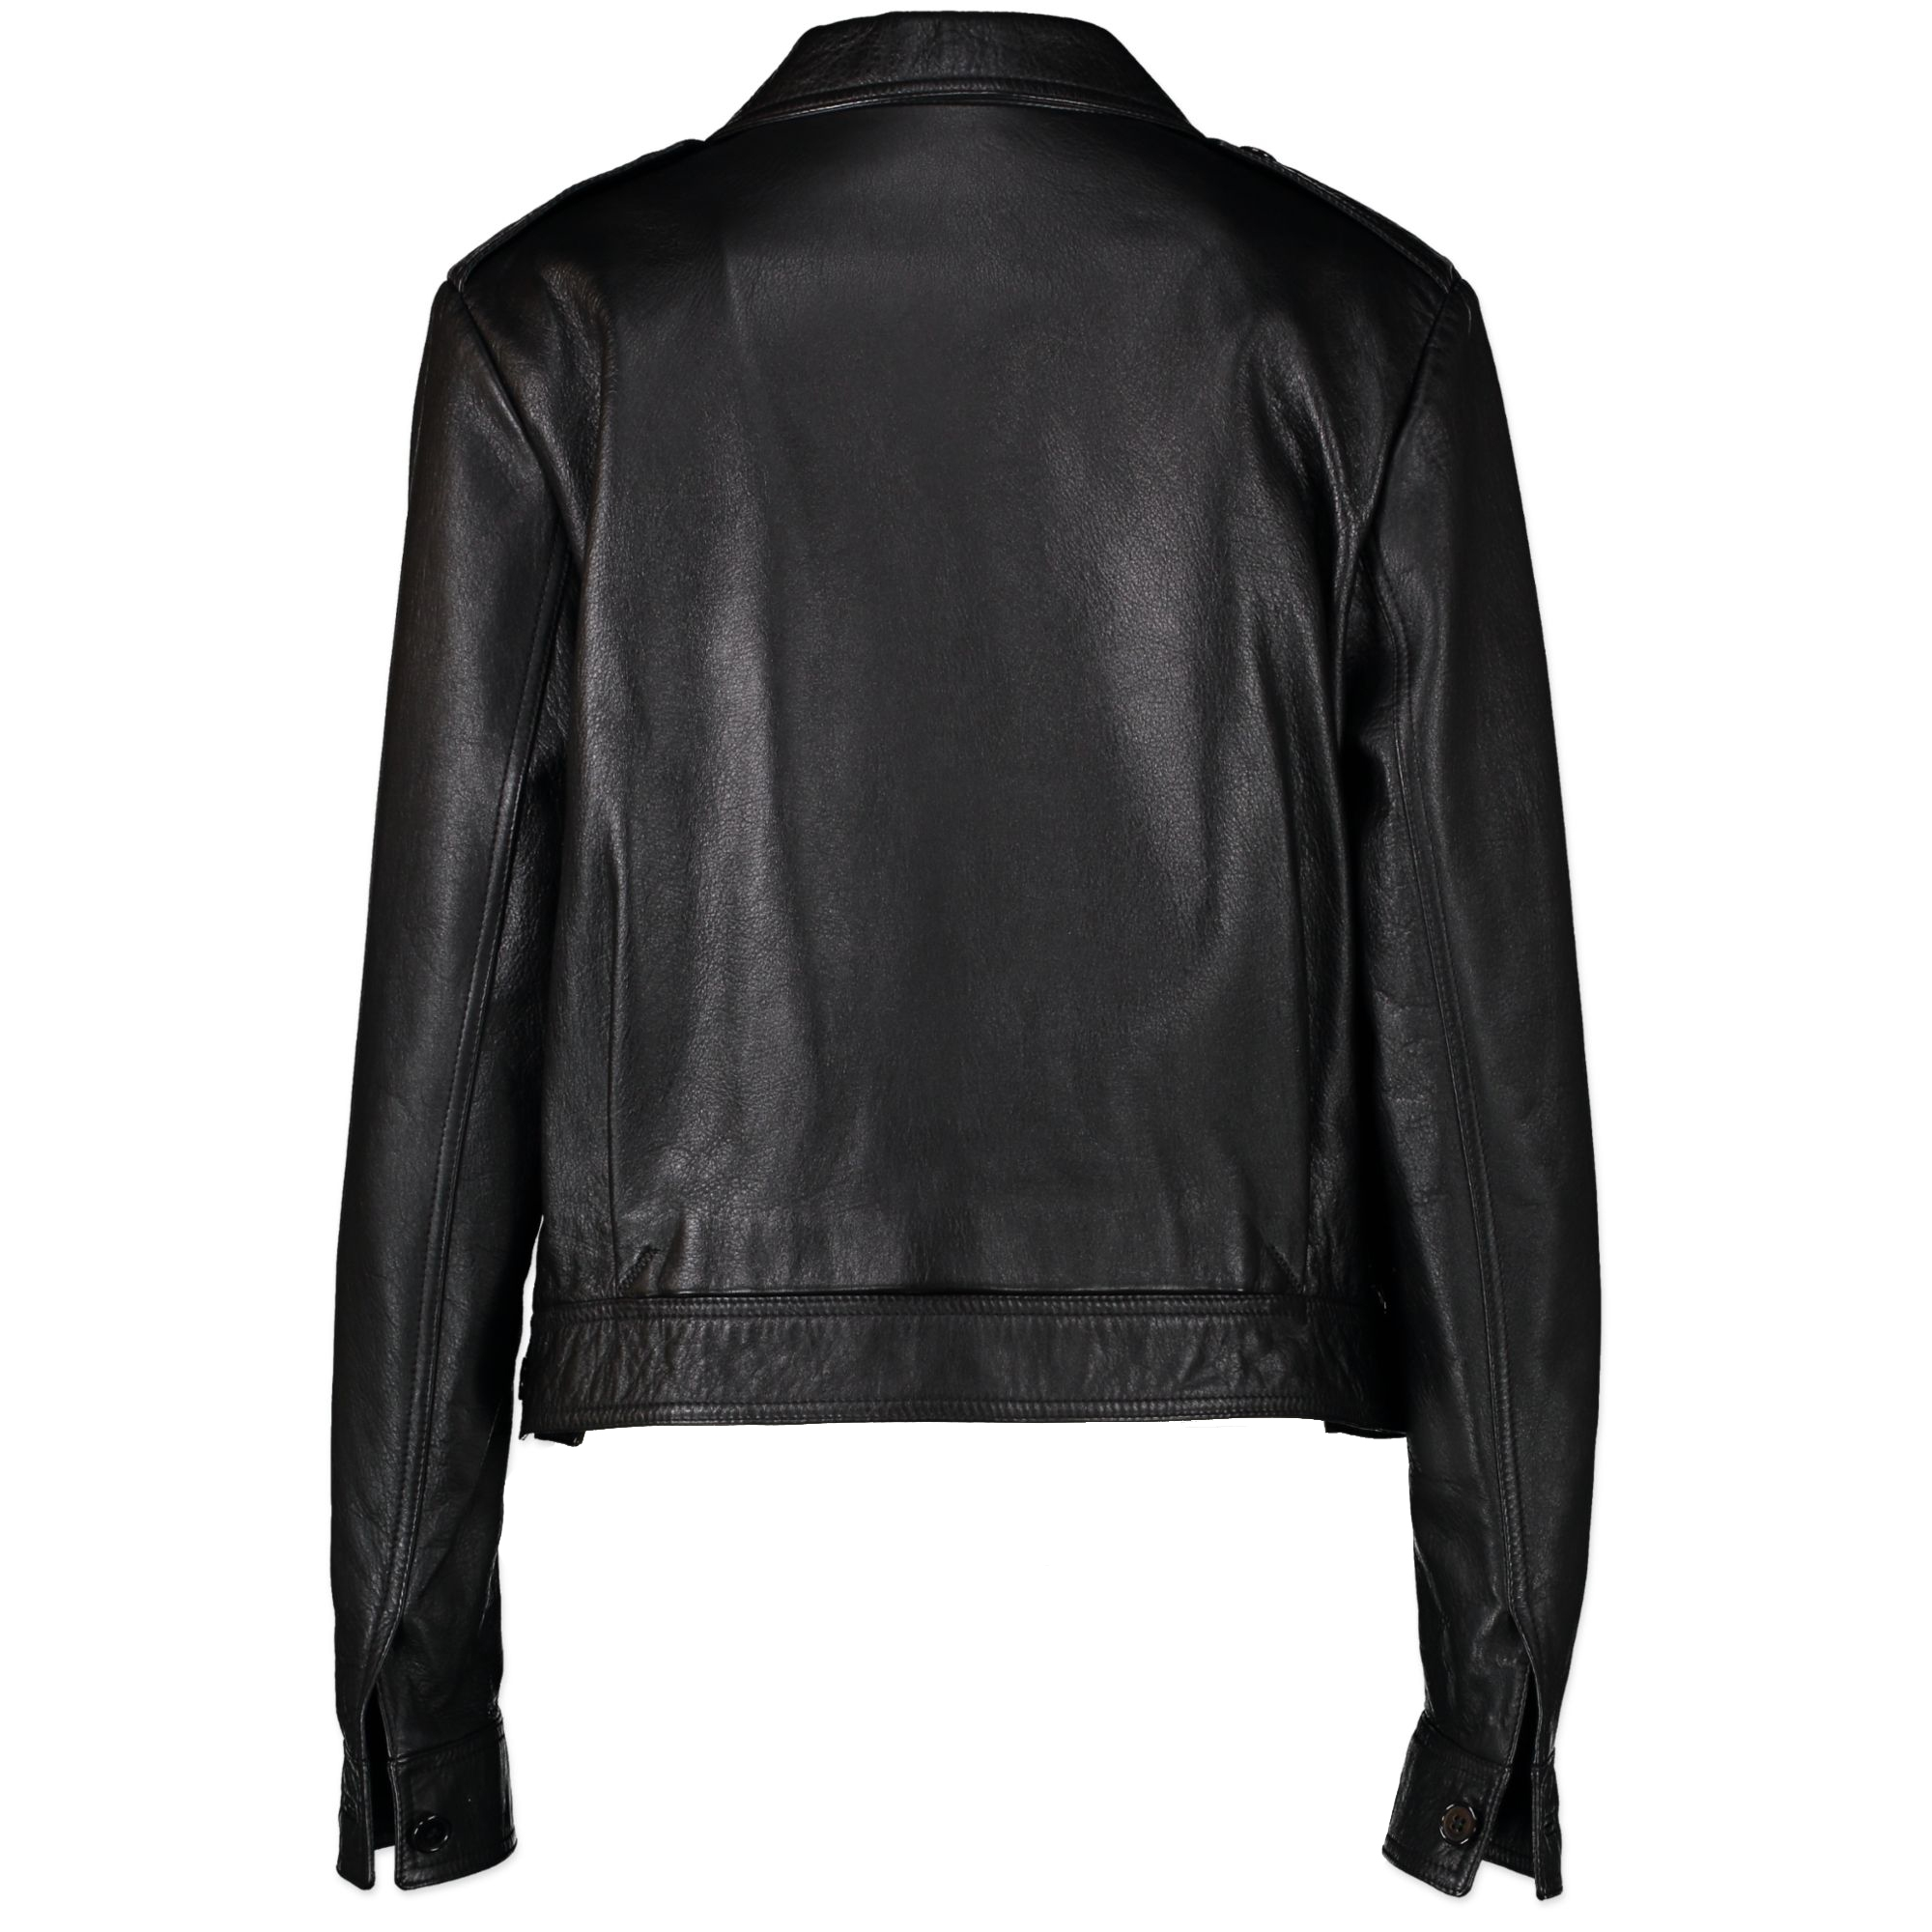 Saint Laurent Black Lamb Leather Jacket available online at Labellov secondhand luxury